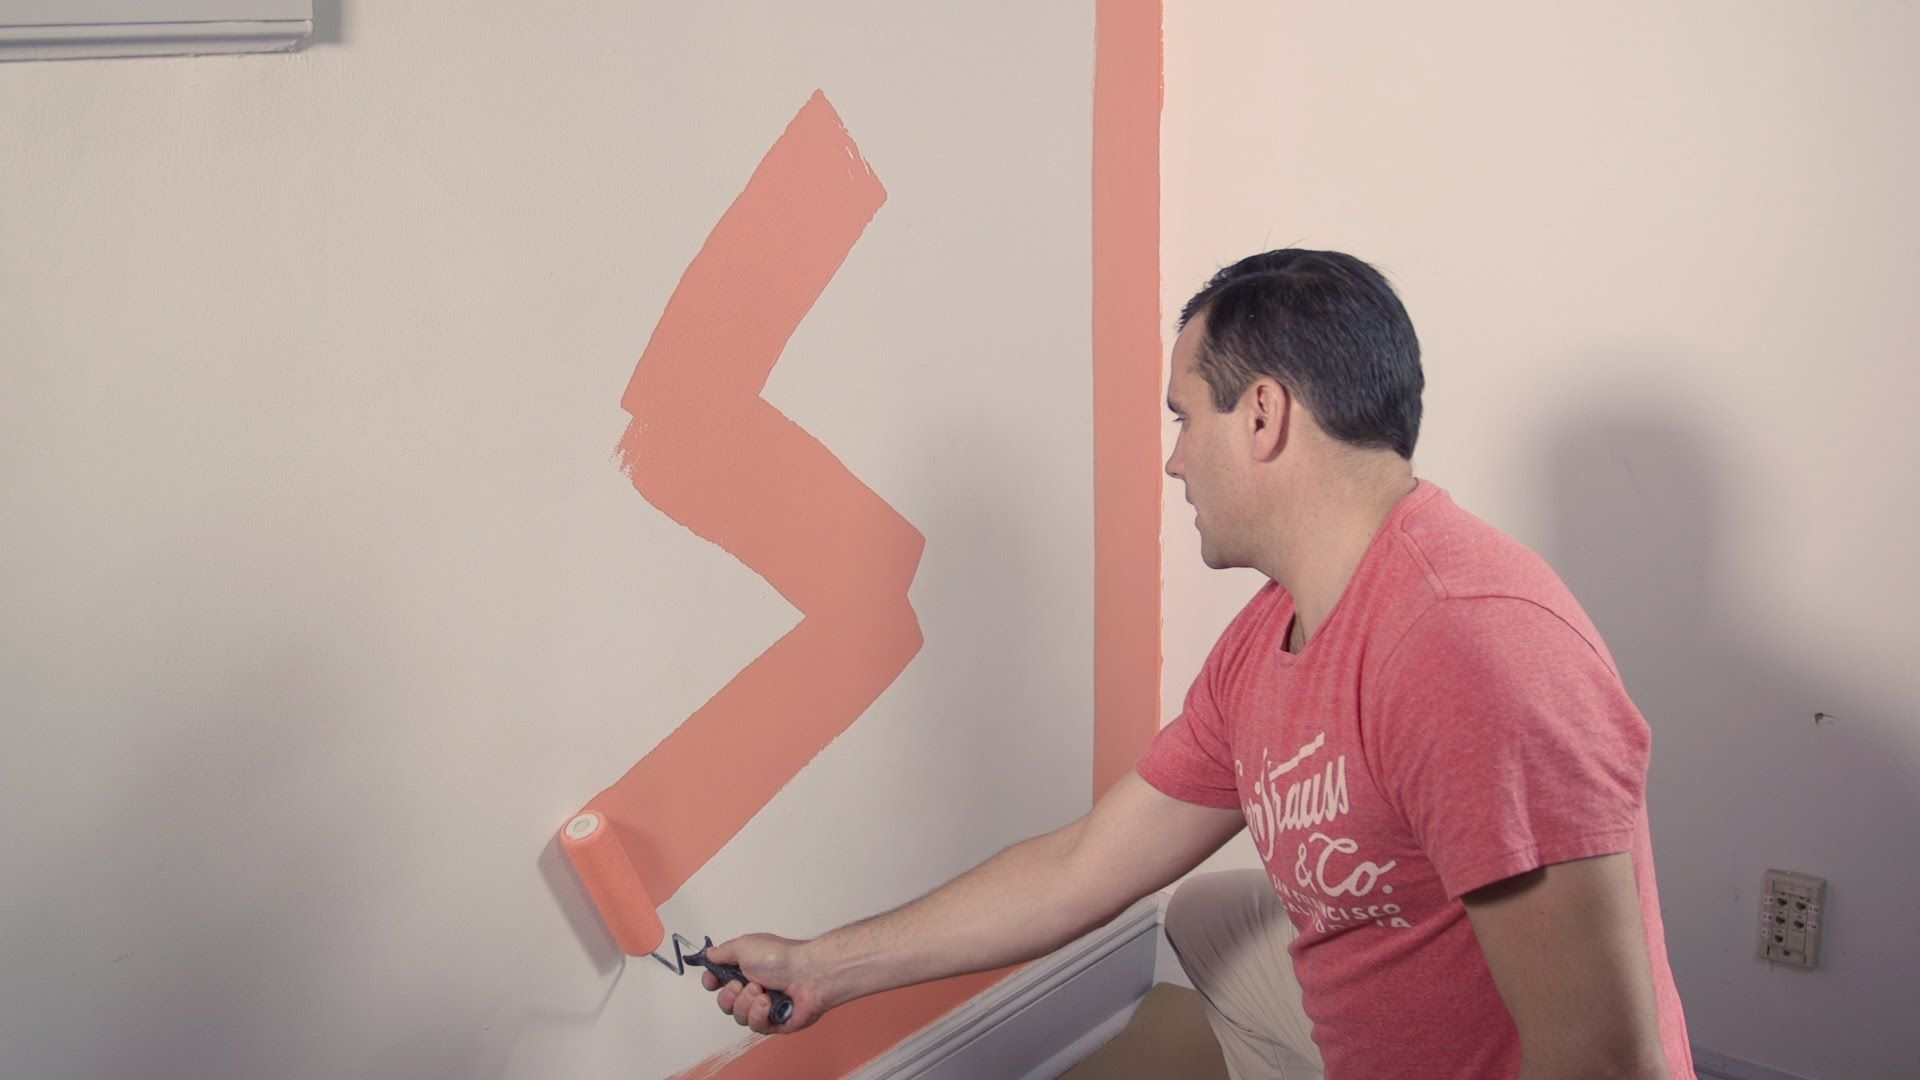 Painting A Wall Doesn T Have To Be As Agonizing As Choosing A Color Consumer Reports Experts Show You Whic Room Paint Paint Rollers With Designs Painting Trim